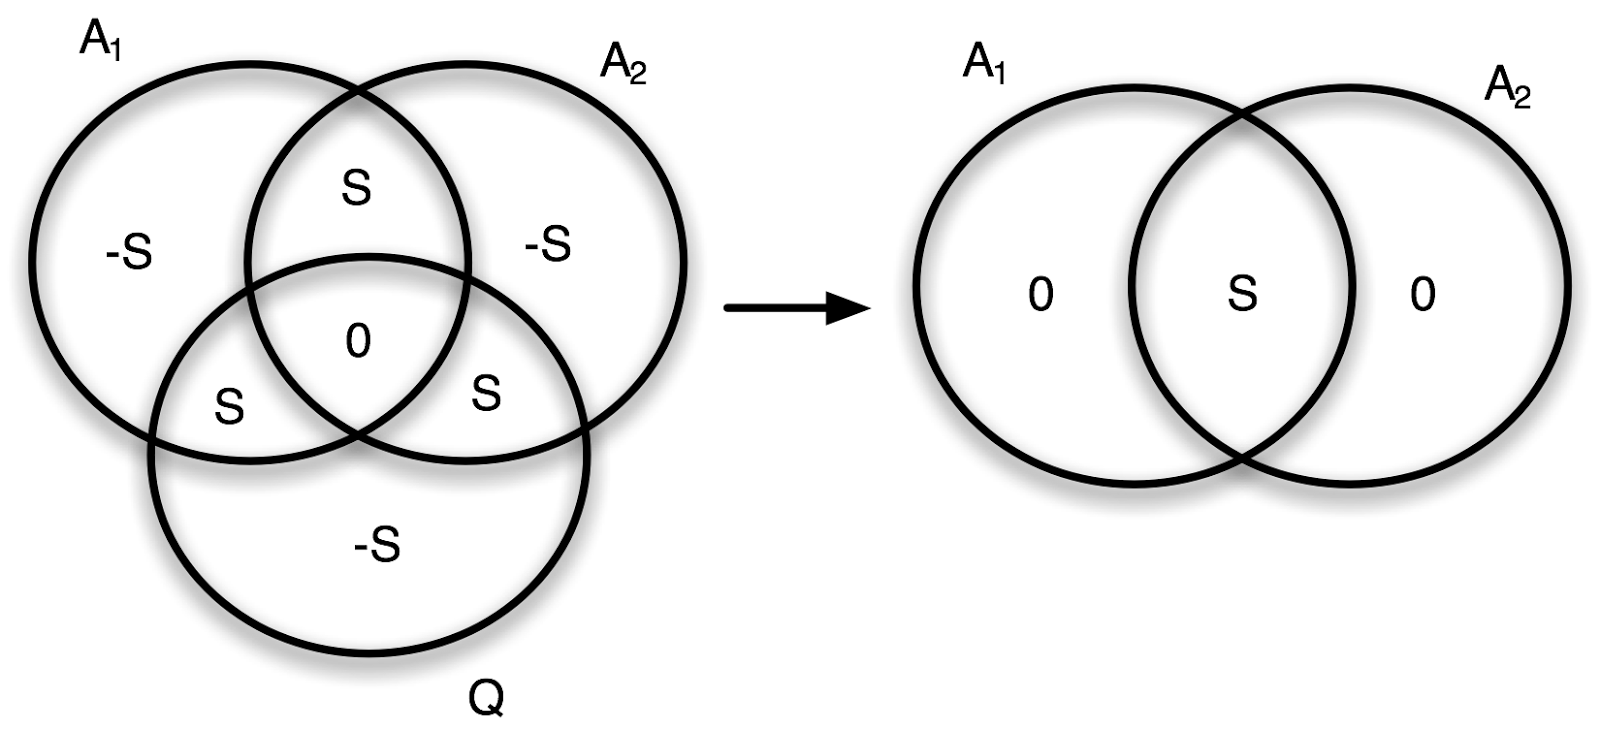 Venn diagram of the full quantum system plus measurement device (left), and only of the measurement device (not looking at the quantum system (right).